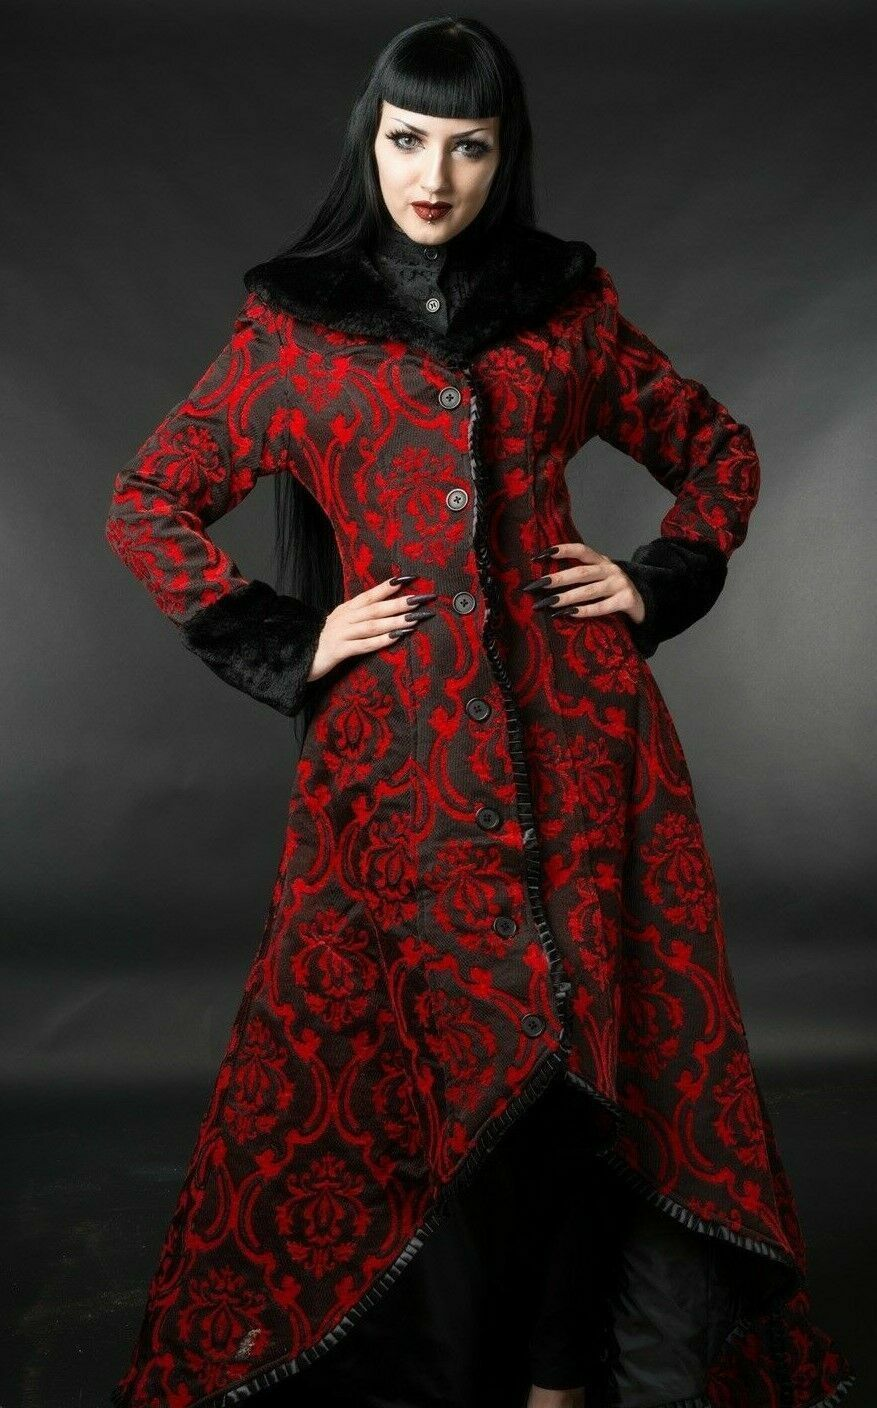 Primary image for Women's Red Black Brocade Gothic Victorian Fall Winter Long Steampunk Coat